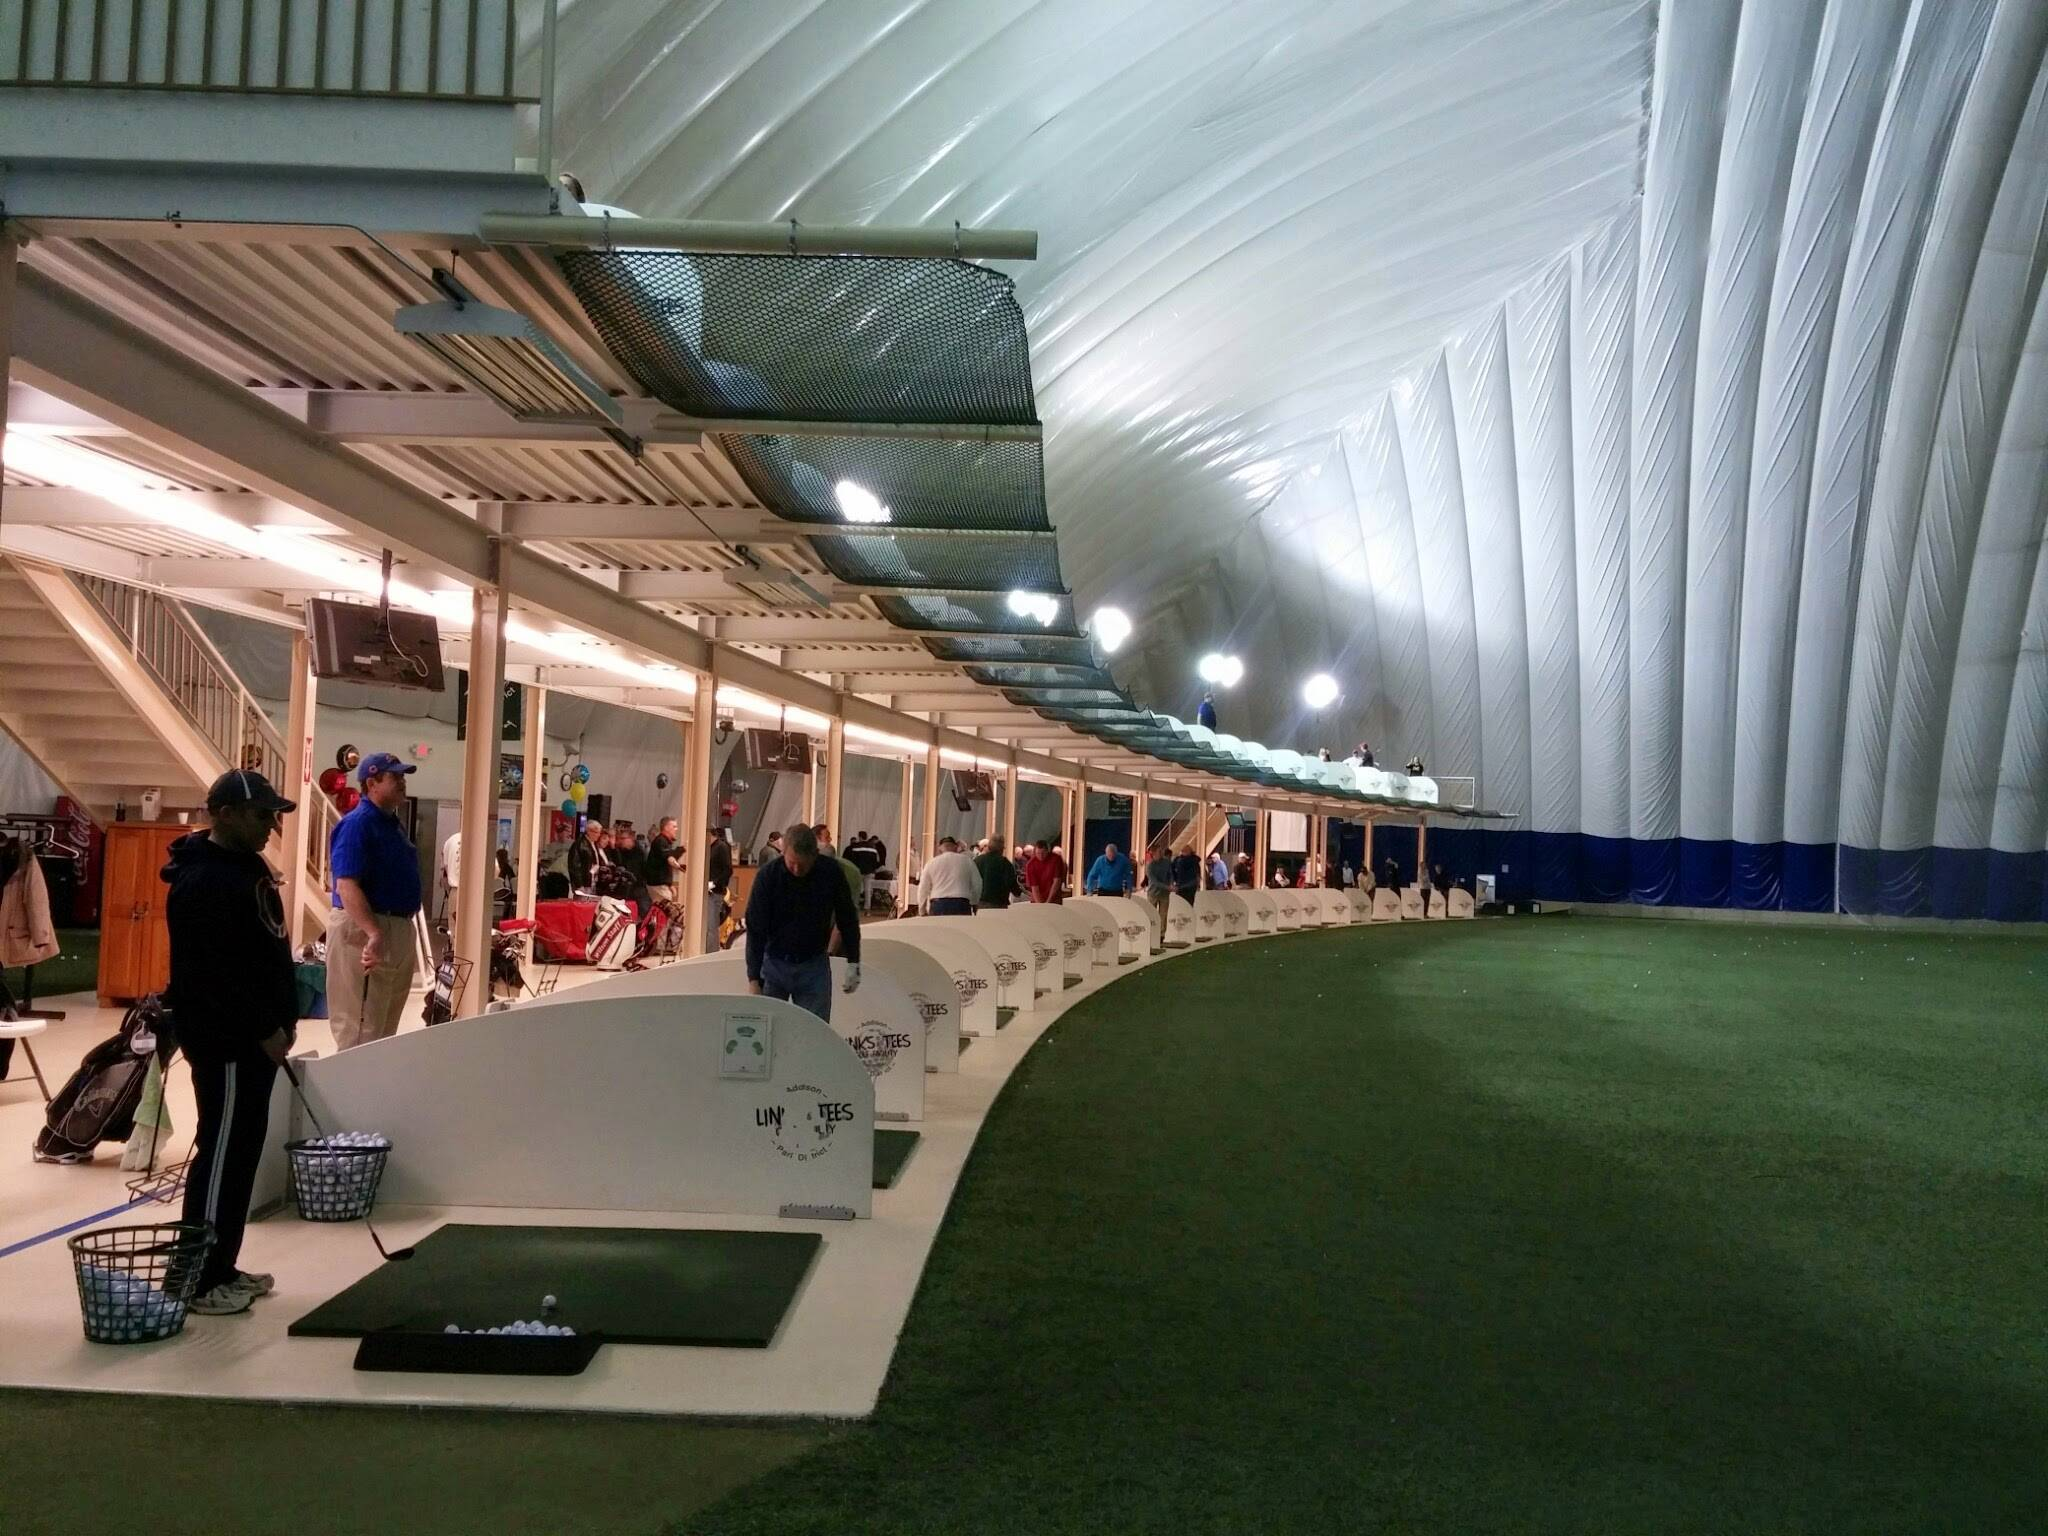 The public is invited to test-drive the latest name-brand golf equipment at Links & Tees Golf Dome located just 1.5 miles east of I-355 on Lake Street in Addison.Braulio Herrera